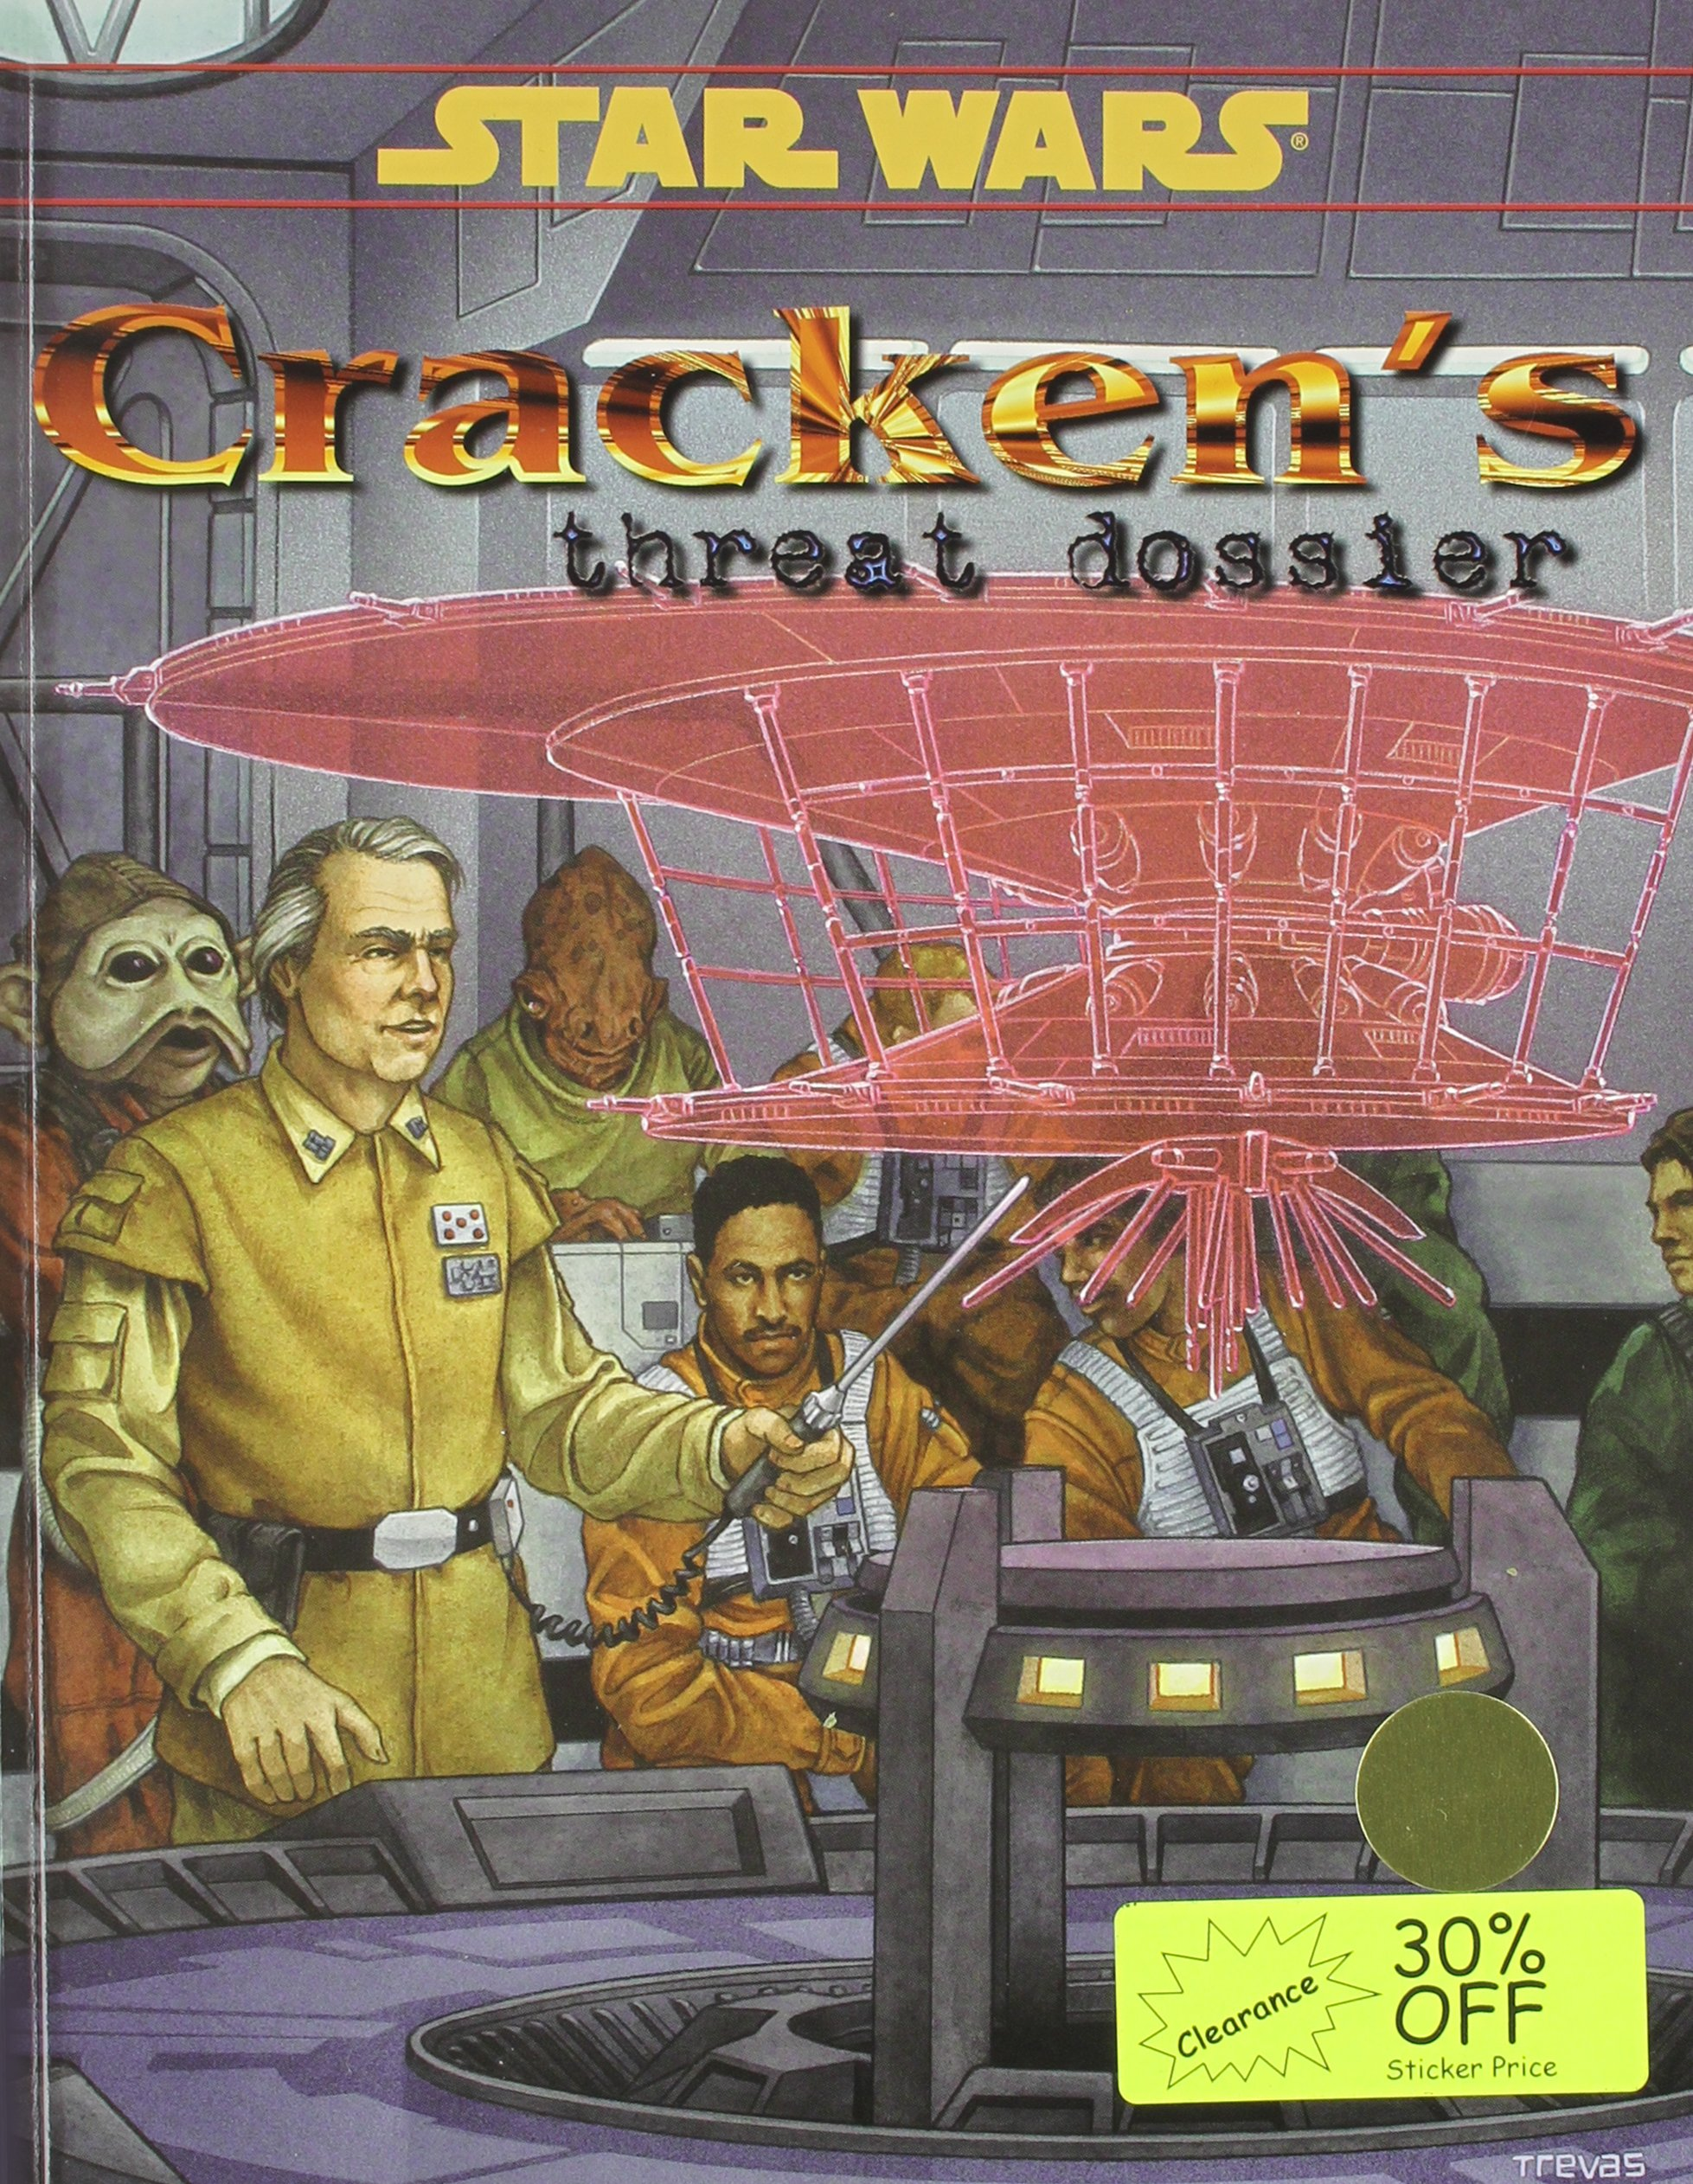 Star Wars: Cracken's Threat Dossier